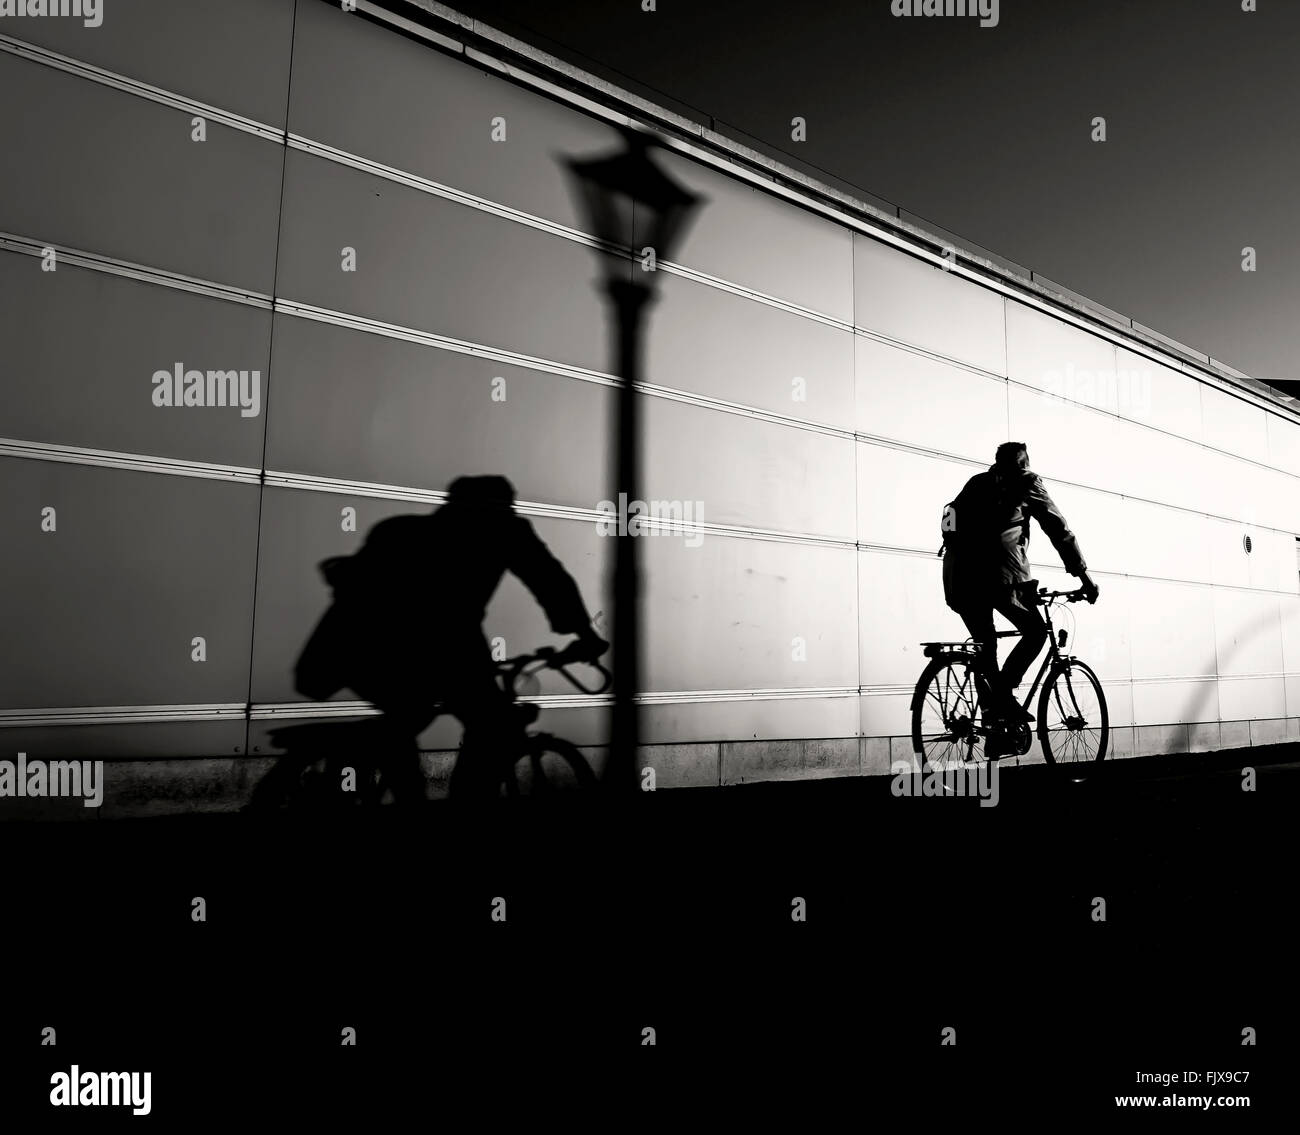 Man Riding Bicycle On Road By Wall Stock Photo